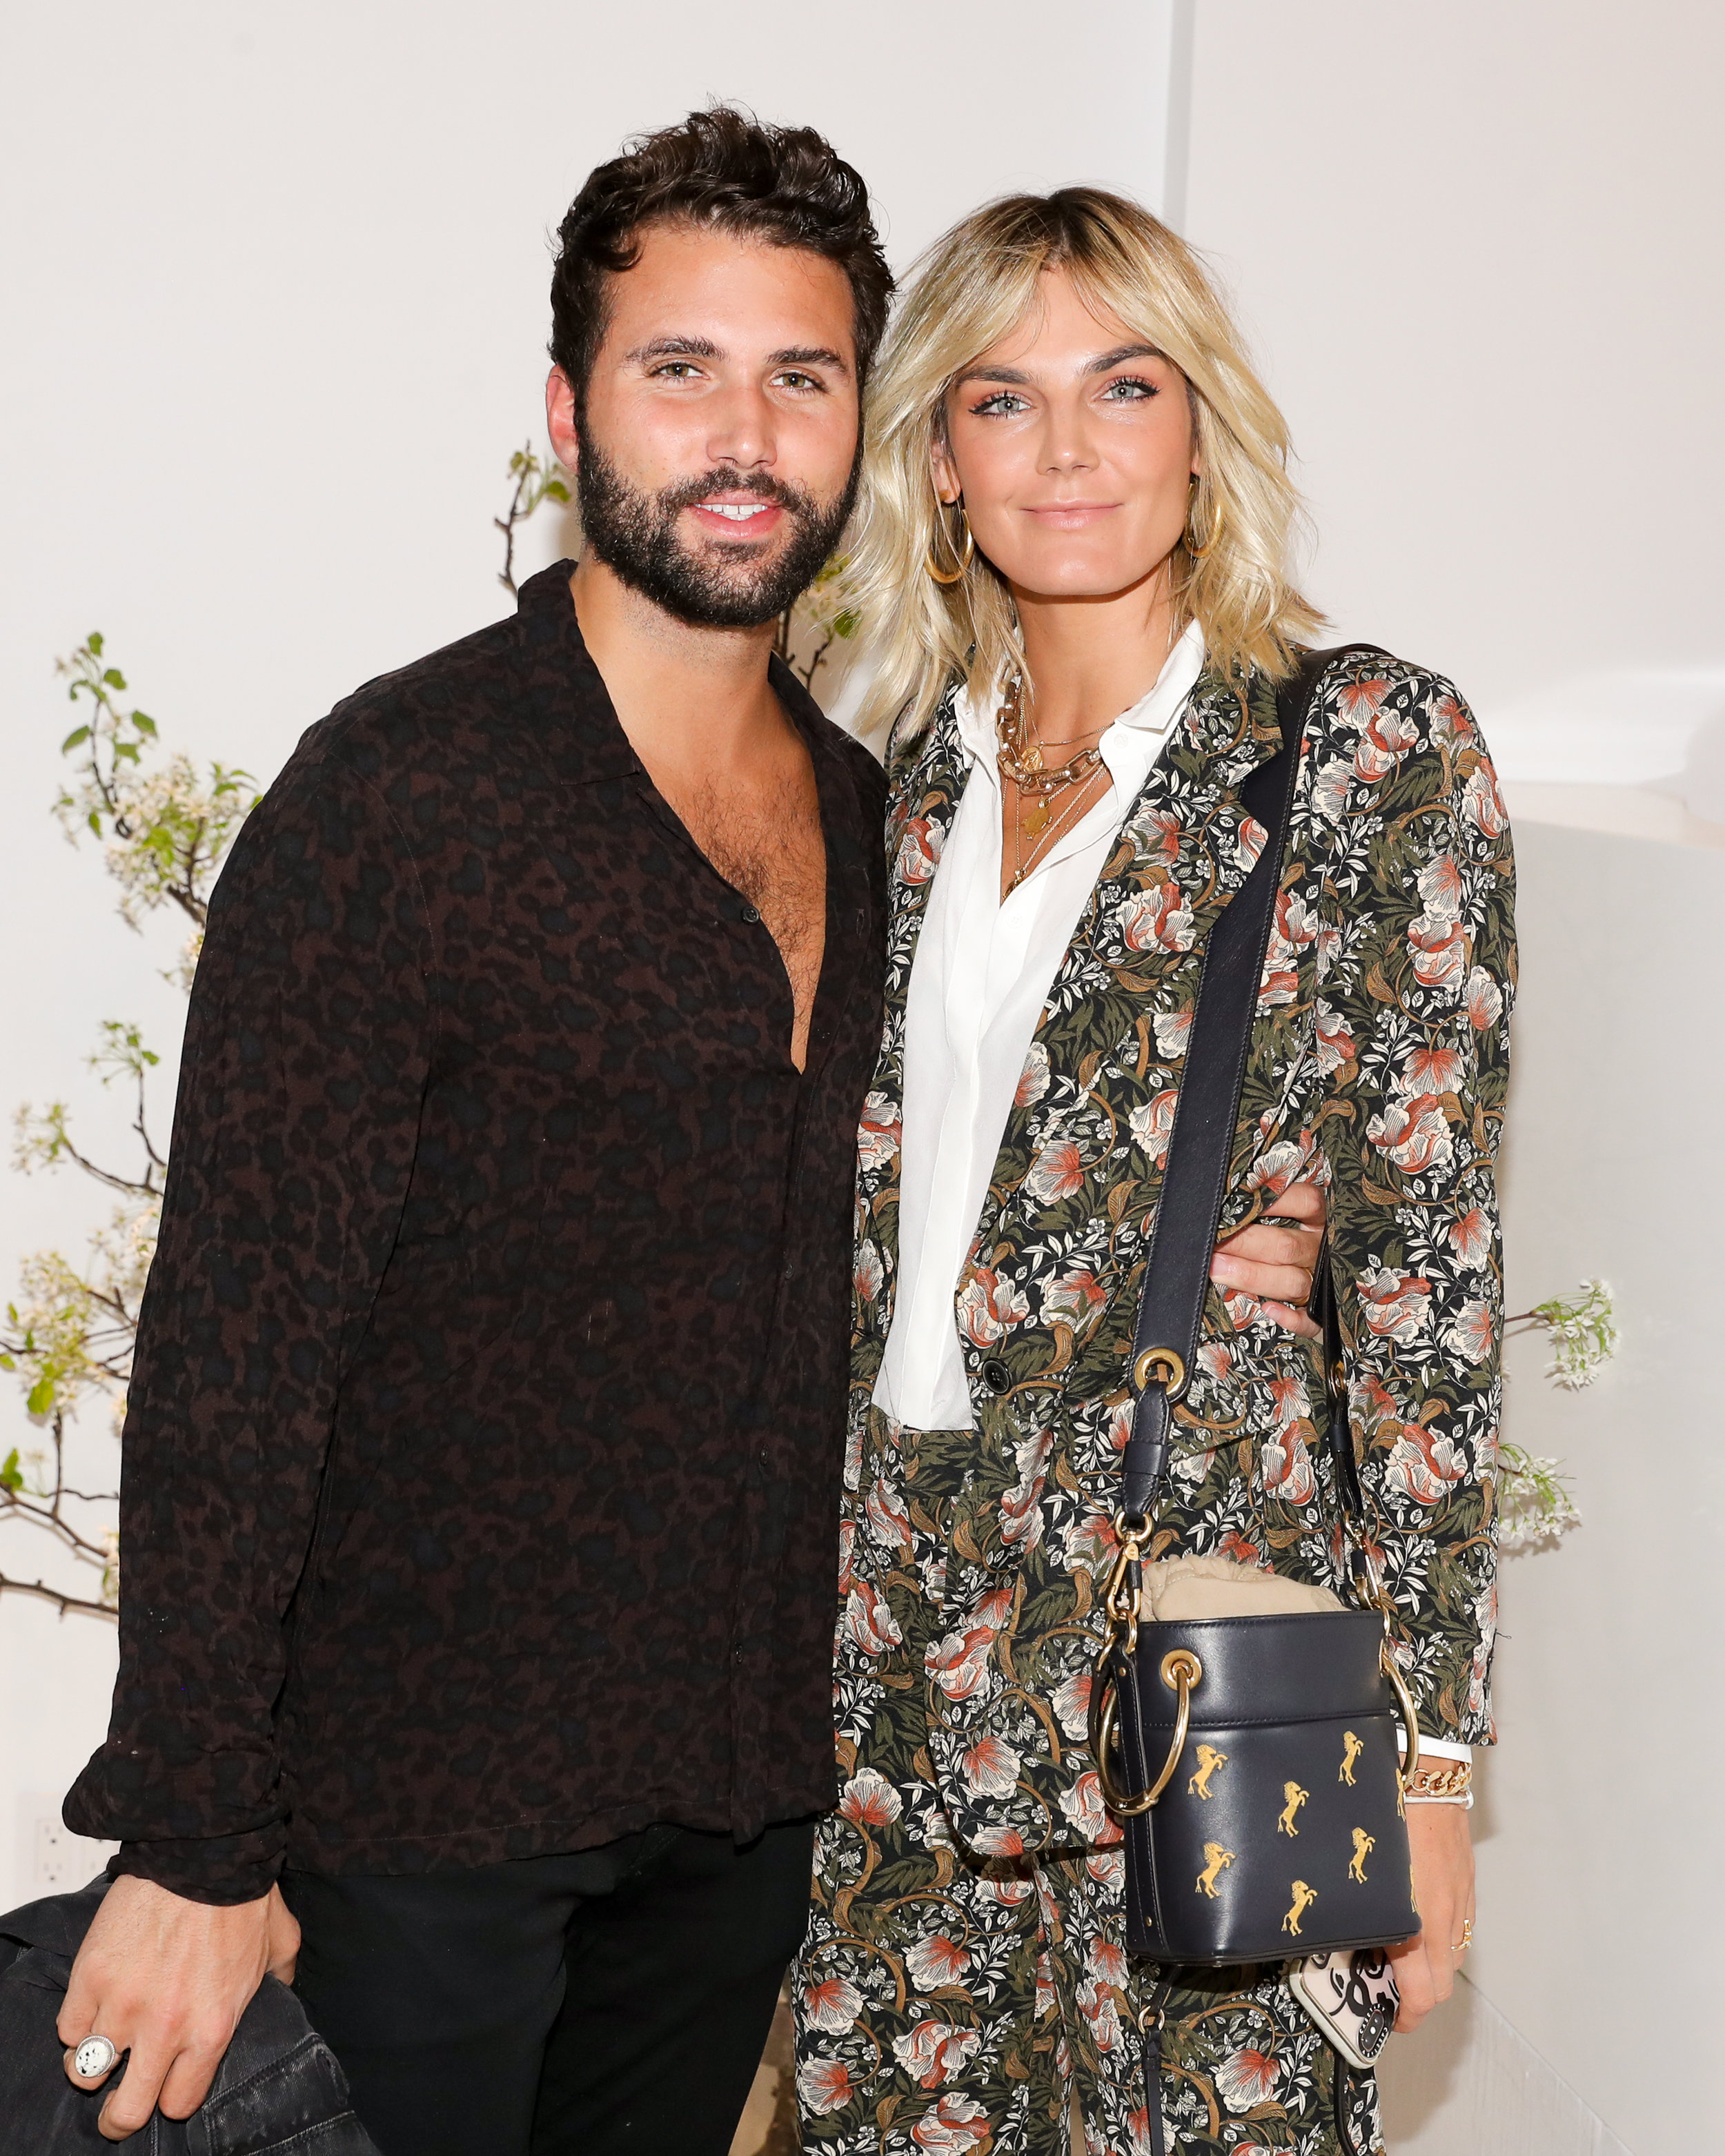 From Left To Right: Cole Herrmann and Tezza Barton attend The Opening of The Dr. Barbara Sturm Zero Bond Boutique & Spa on Thursday, May 2, 2019. Photographed by Neil Rasmus/BFA.